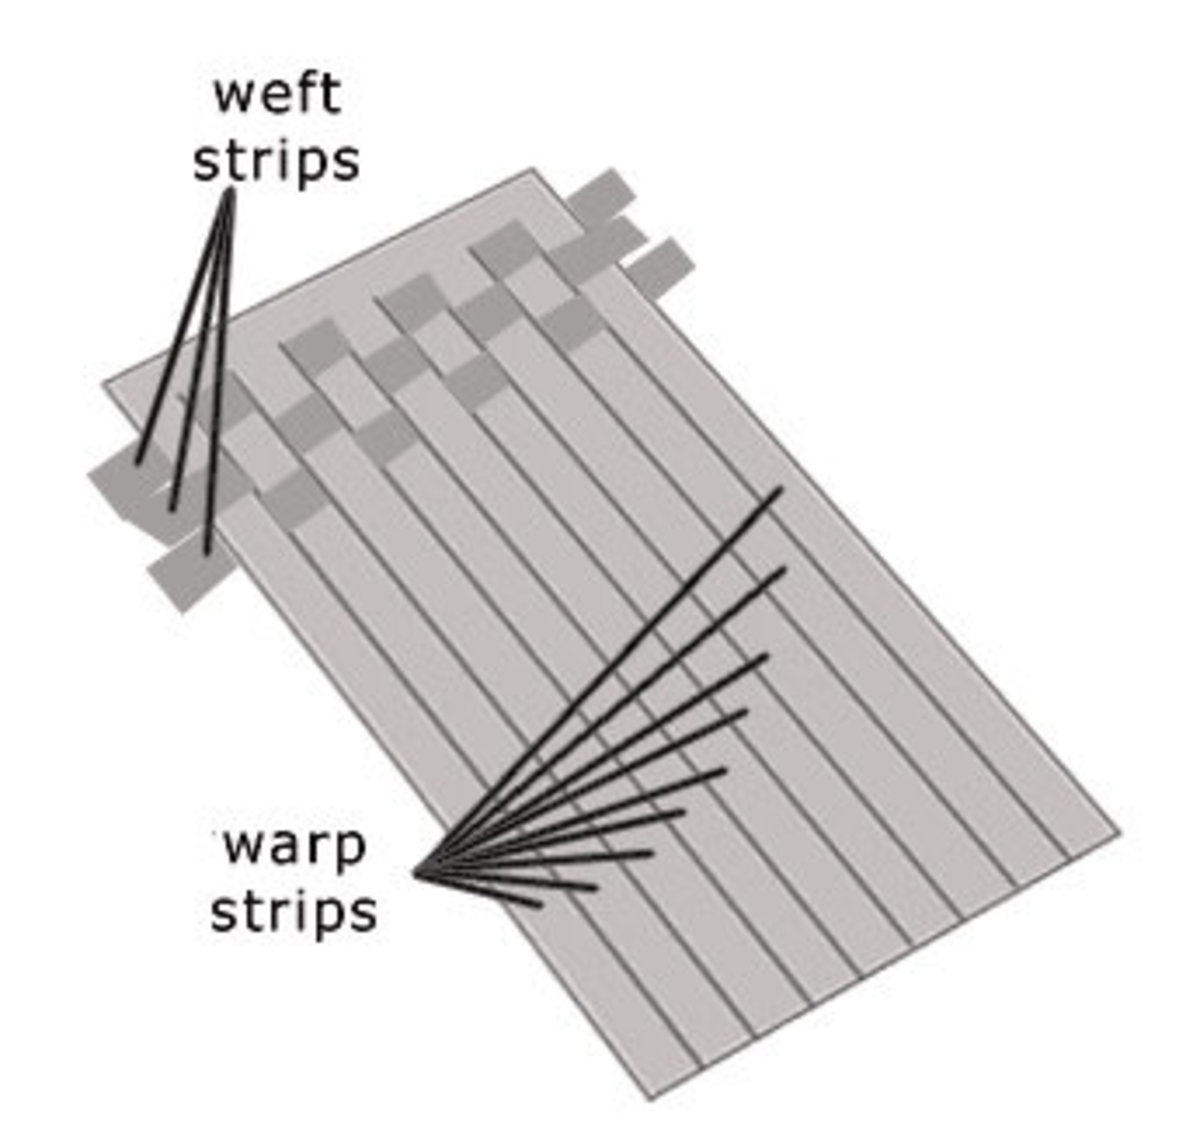 Metal clay weaving - warp and weft strips